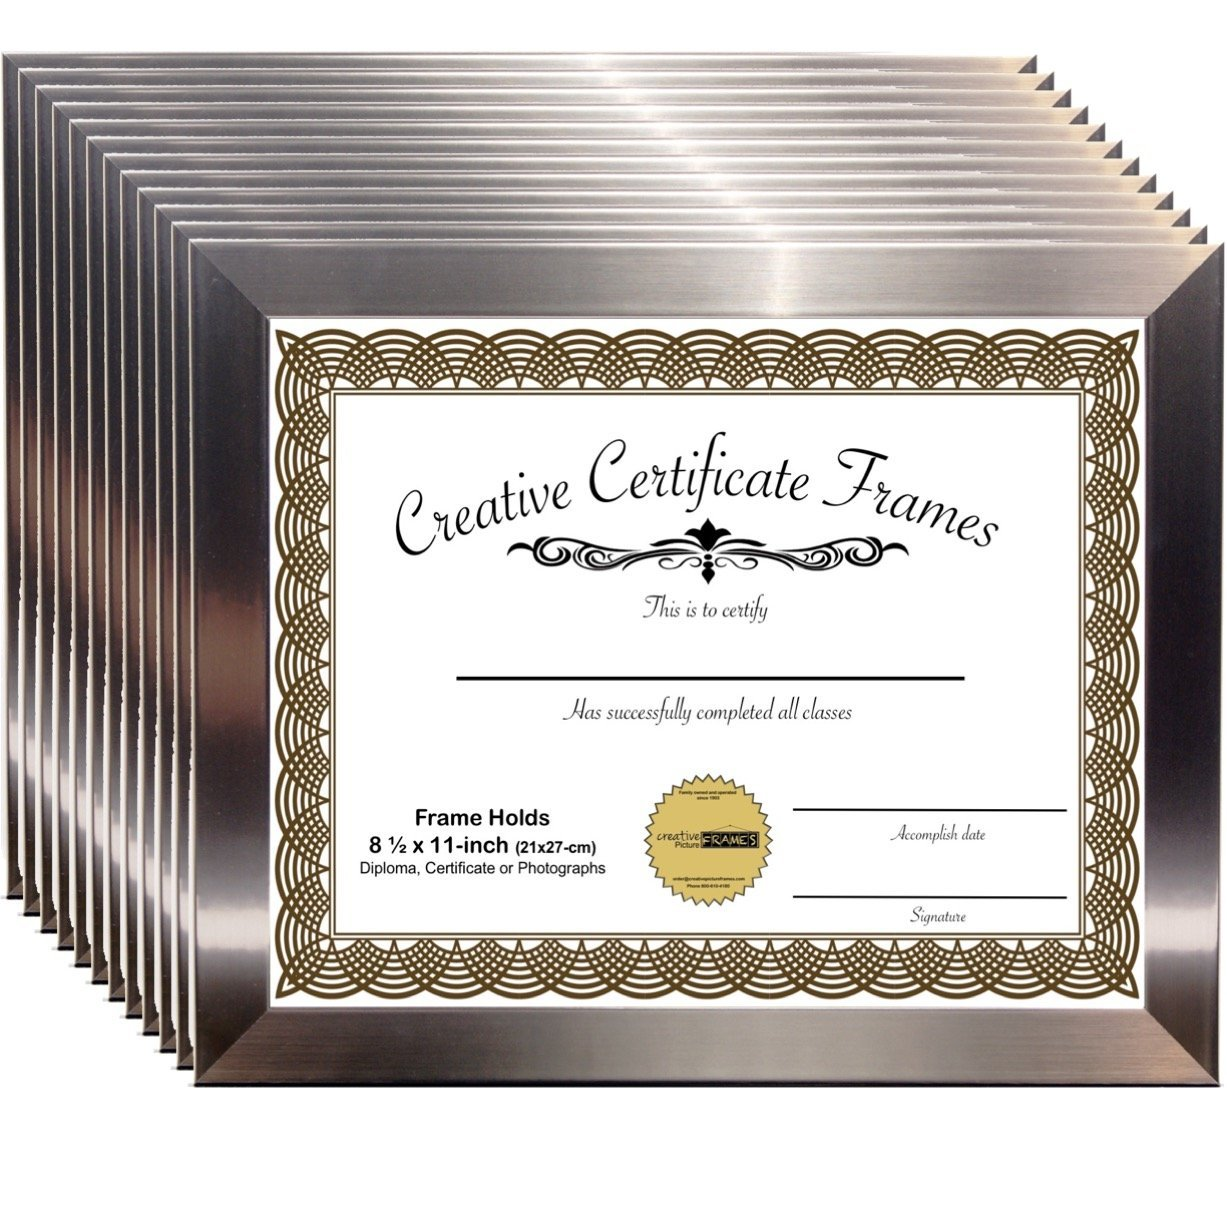 CreativePF [ZXK7-11x14bk-w] Black Document Frame Displays 8.5 by 11-inch with Mat Or 11 by 14-inch Certificate, Graduation, University, Diploma Frames with Stand & Wall Hanger (Pack of 4) Creative Picture Frames 4pk-certificate11x14bk-w